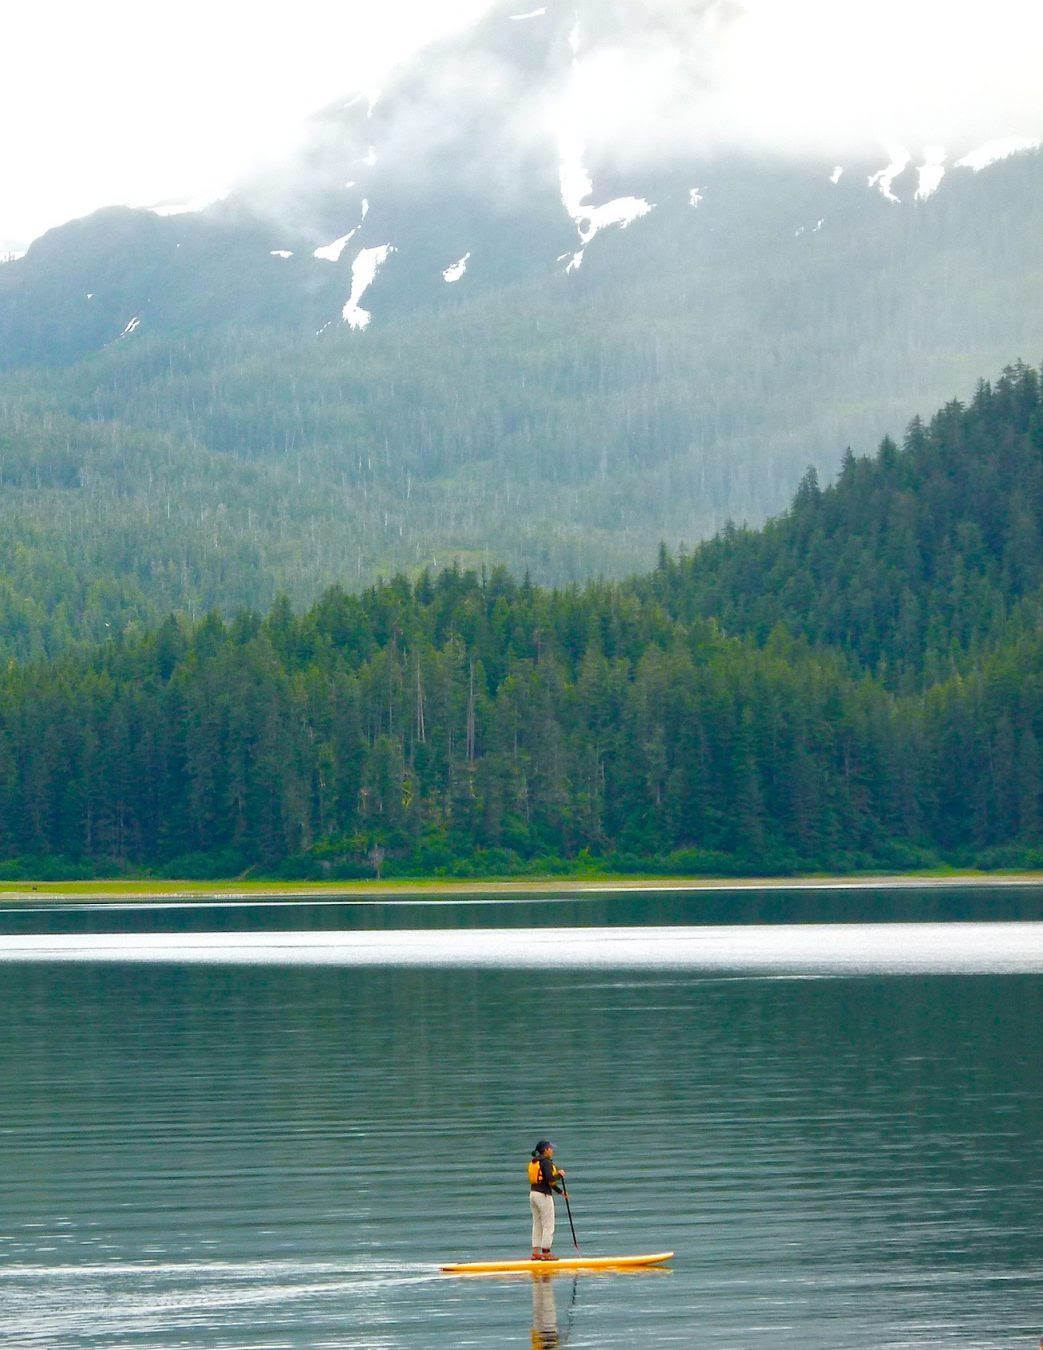 Janet Lien paddle boards in the beautiful Alaskan wilderness.